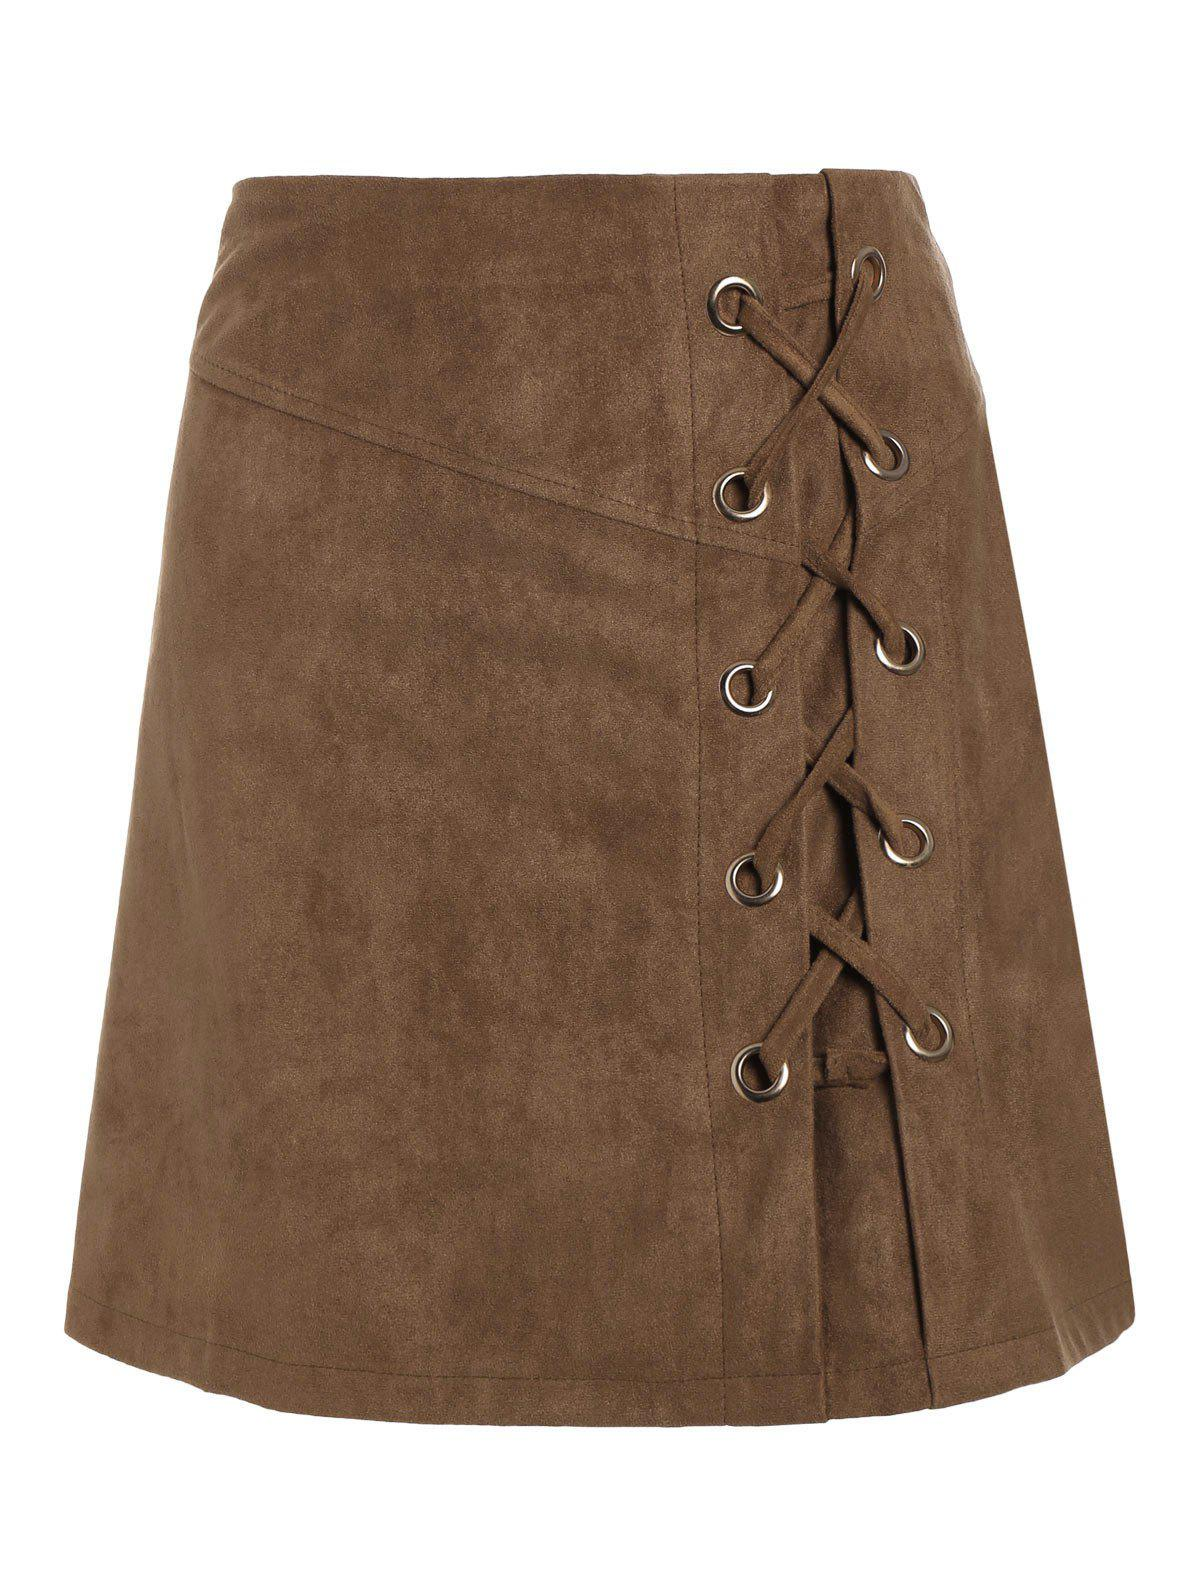 High Waist Lace Up Suede Mini Skirt - KHAKI S